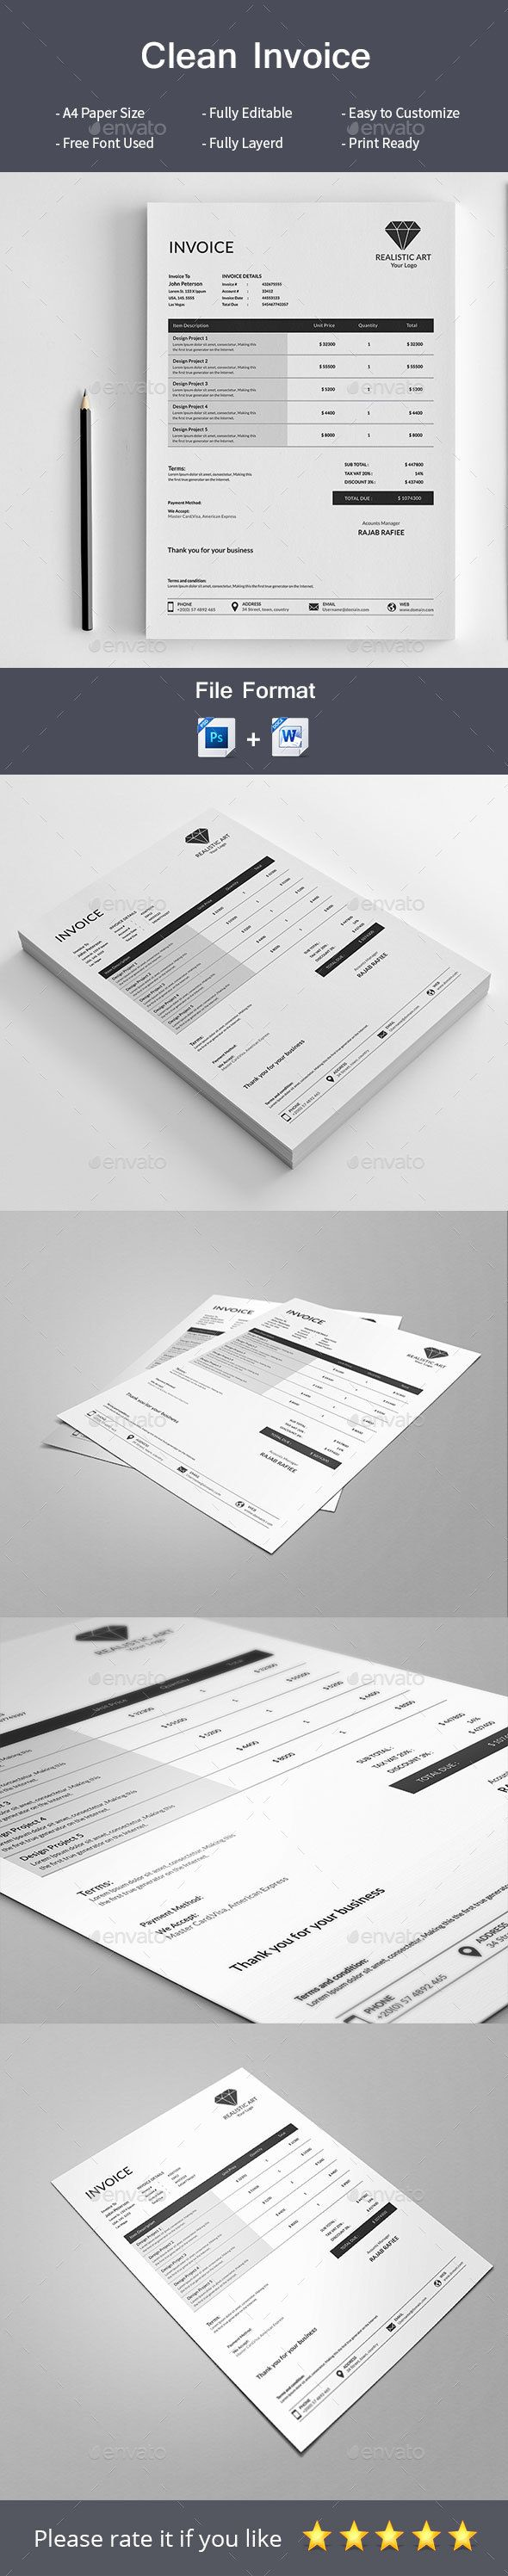 Clean Invoice — Photoshop PSD #automatic #bill • Download ➝ https://graphicriver.net/item/clean-invoice/19505990?ref=pxcr